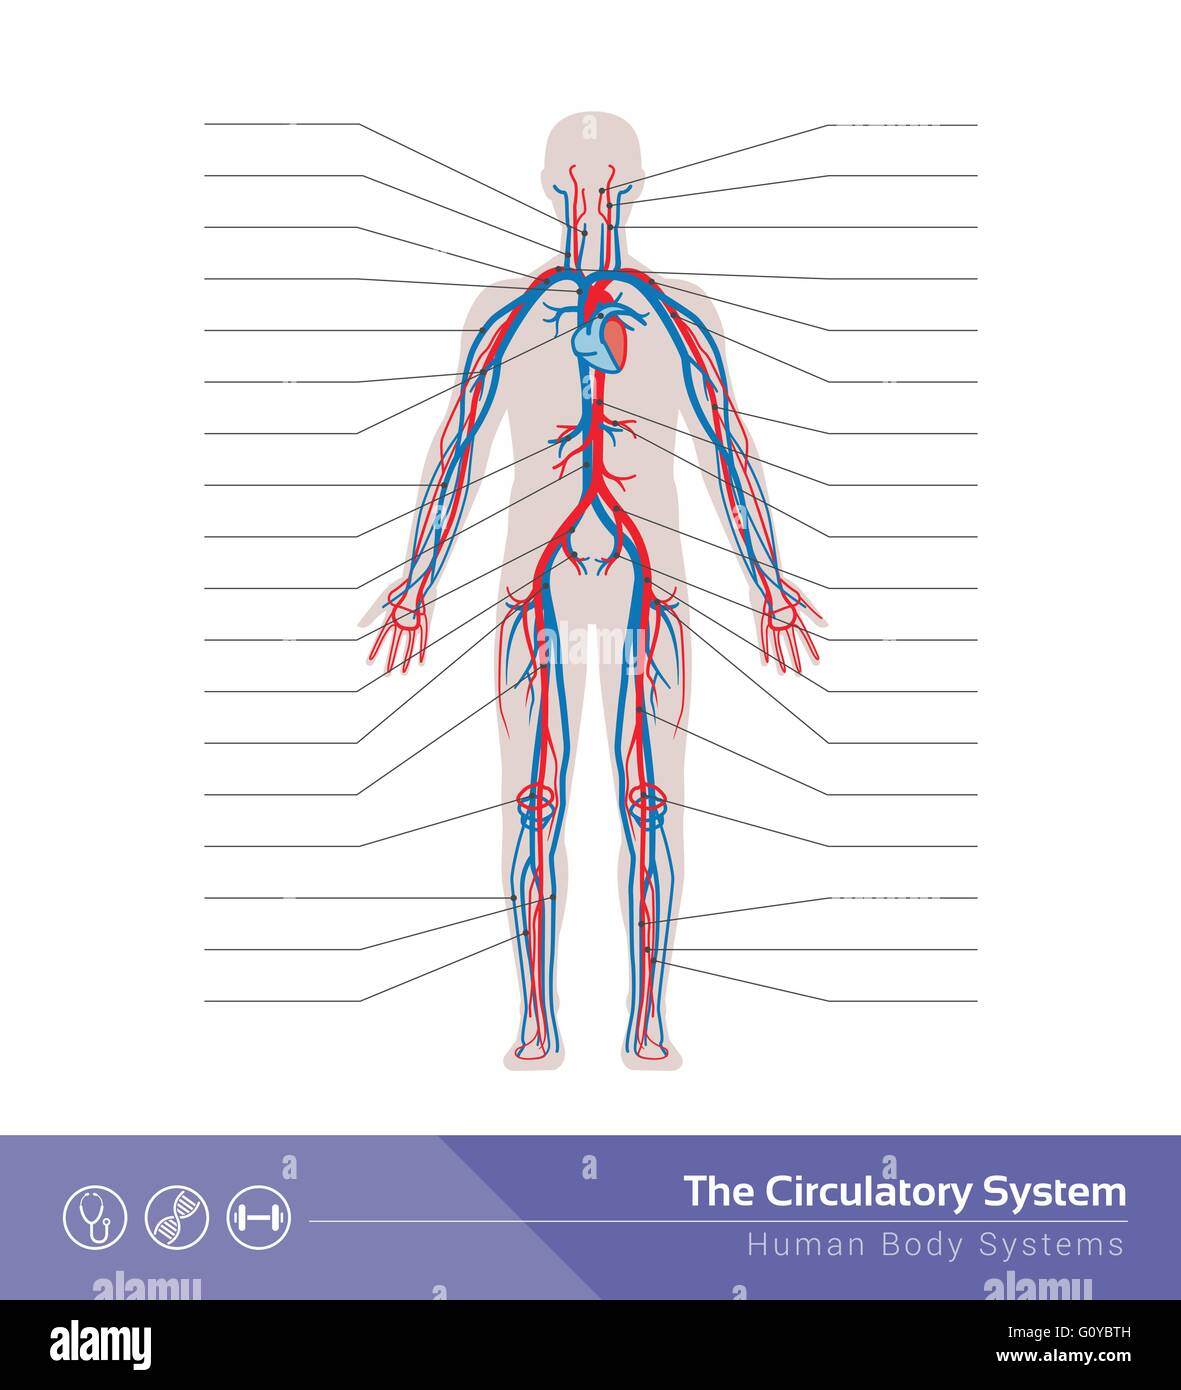 Body System Stockfotos & Body System Bilder - Alamy